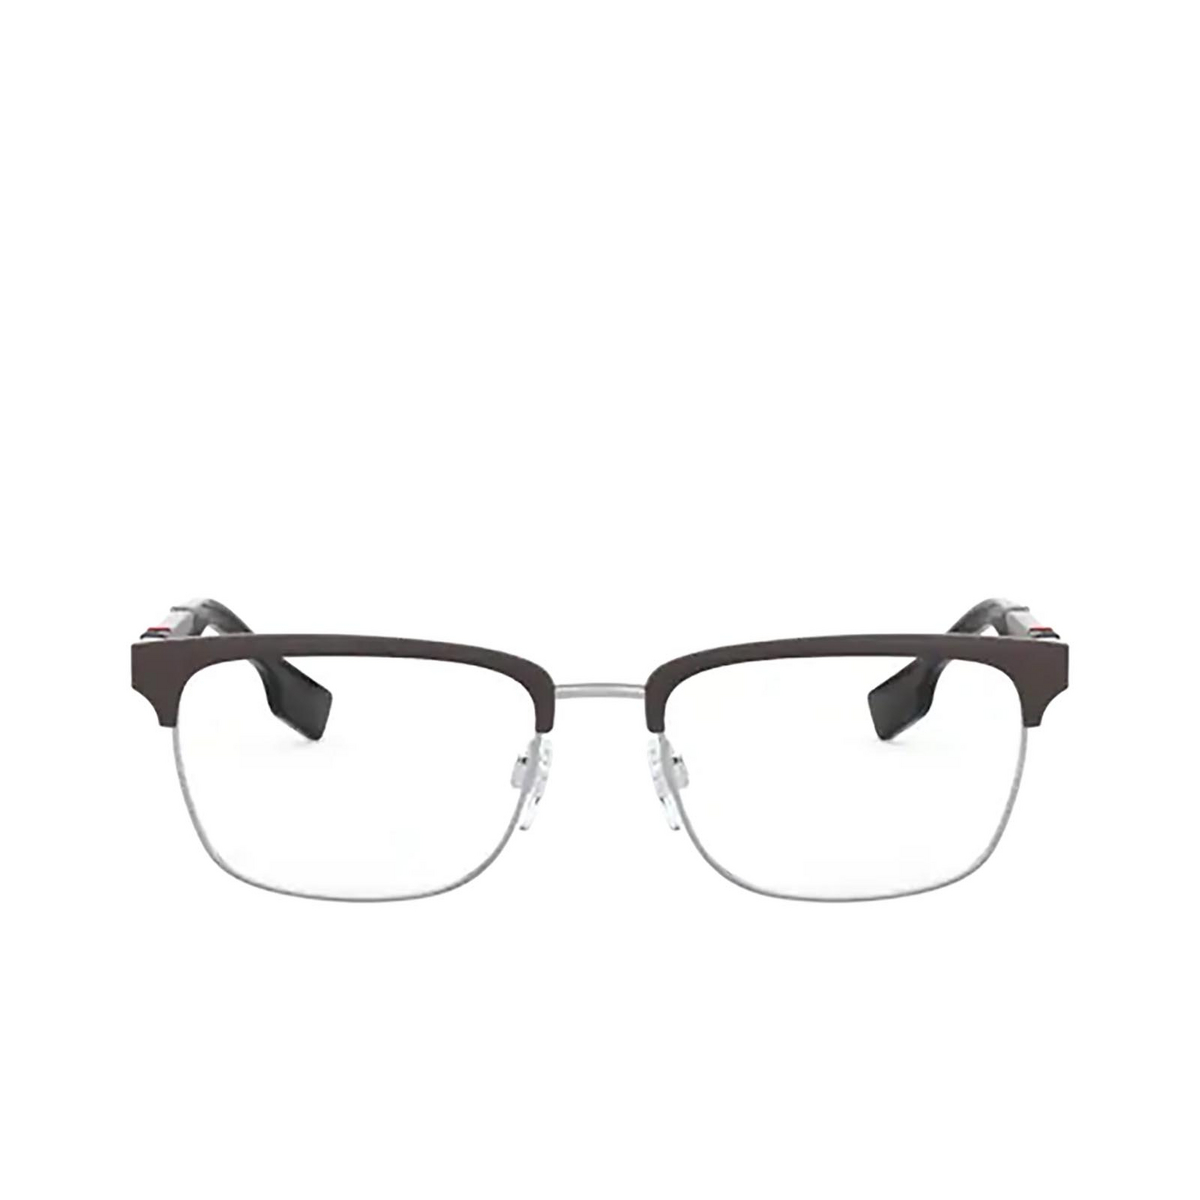 Burberry® Rectangle Eyeglasses: Alba BE1348 color Silver / Matte Brown 1307 - front view.